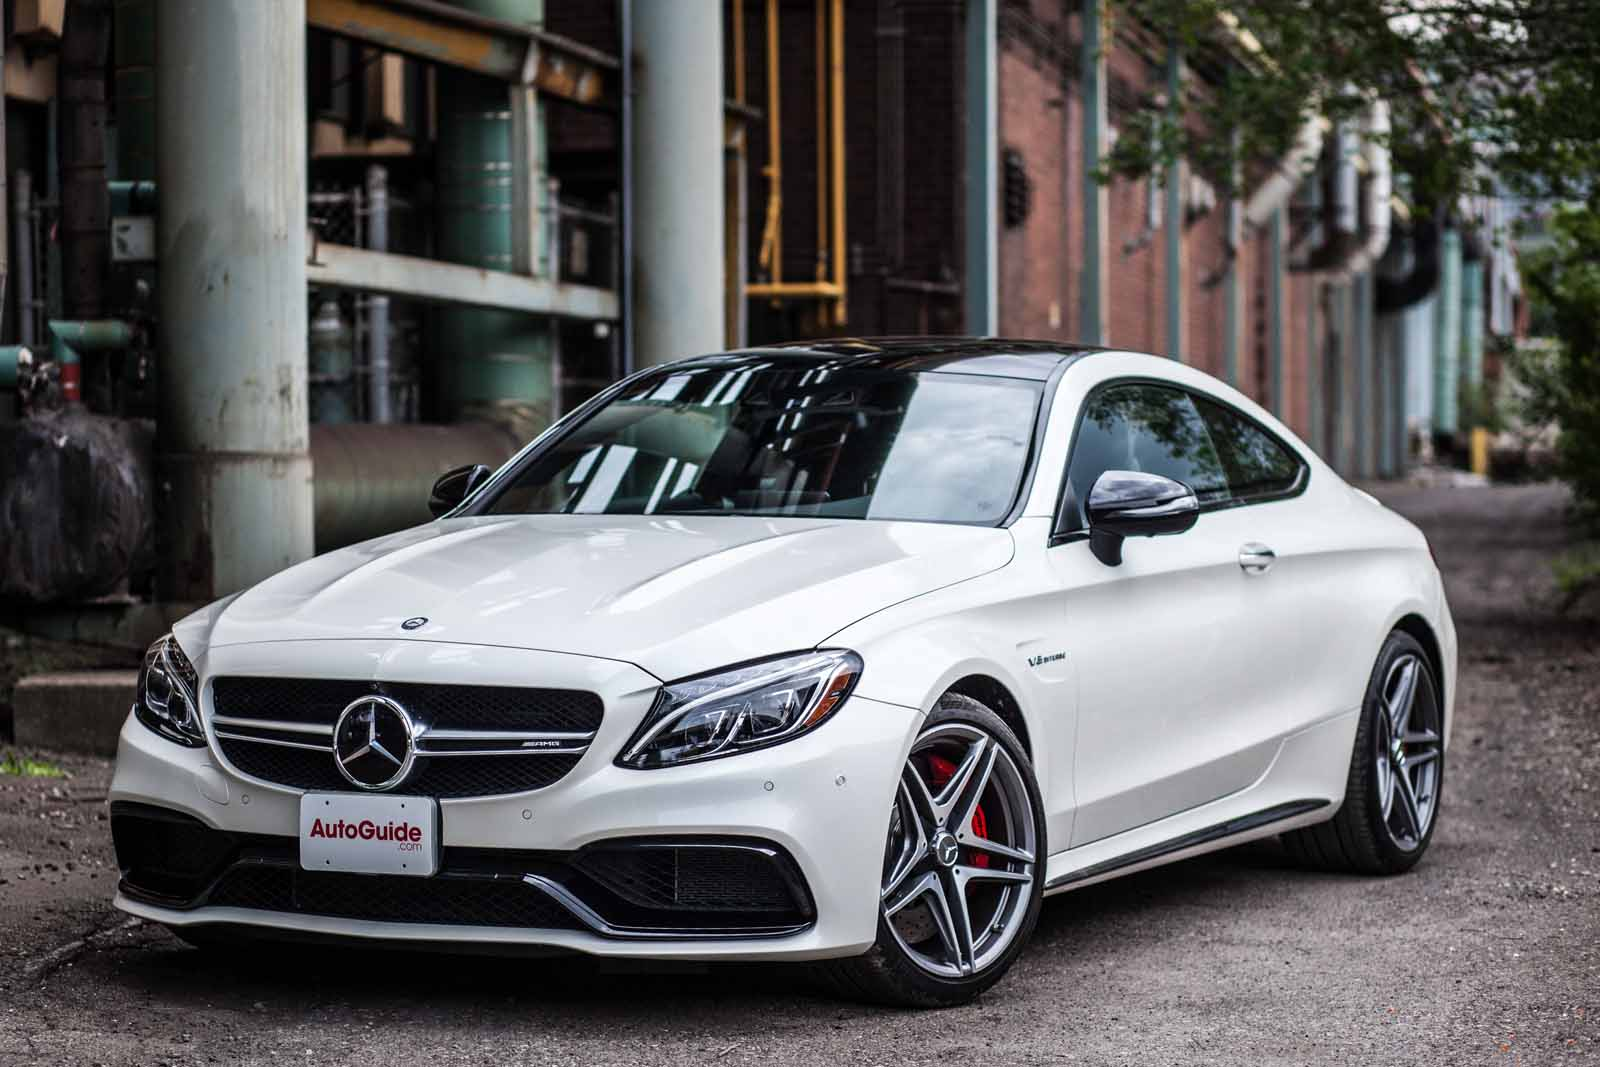 2017 mercedes amg c63 s coupe review news for Mercedes benz c63 amg sedan